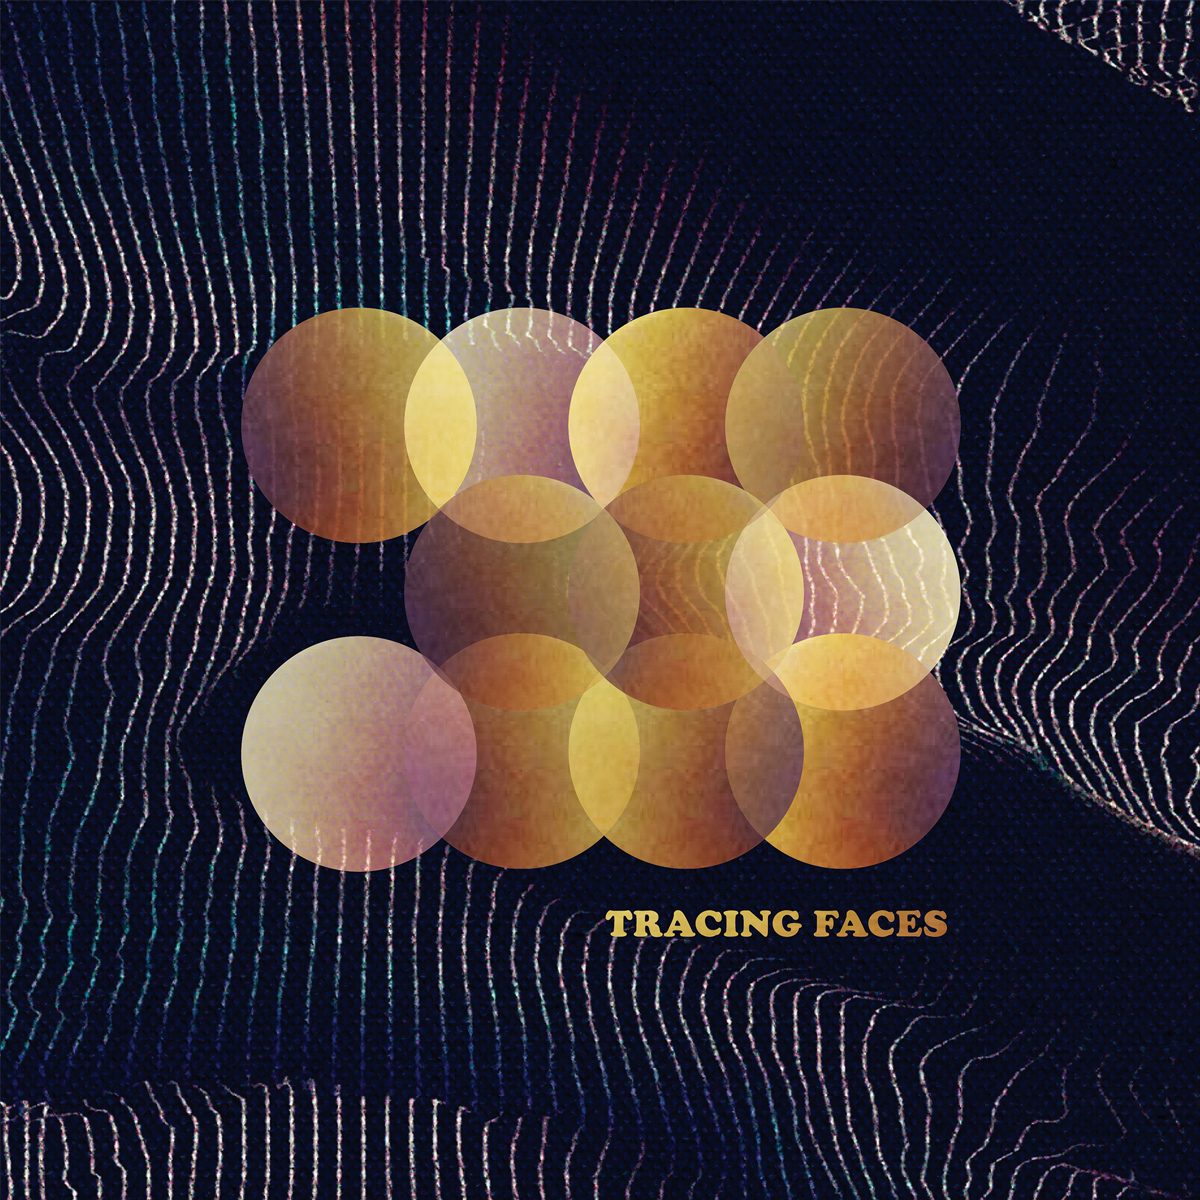 Great Gable new debut album Tracing Faces 2020 Matt Corby